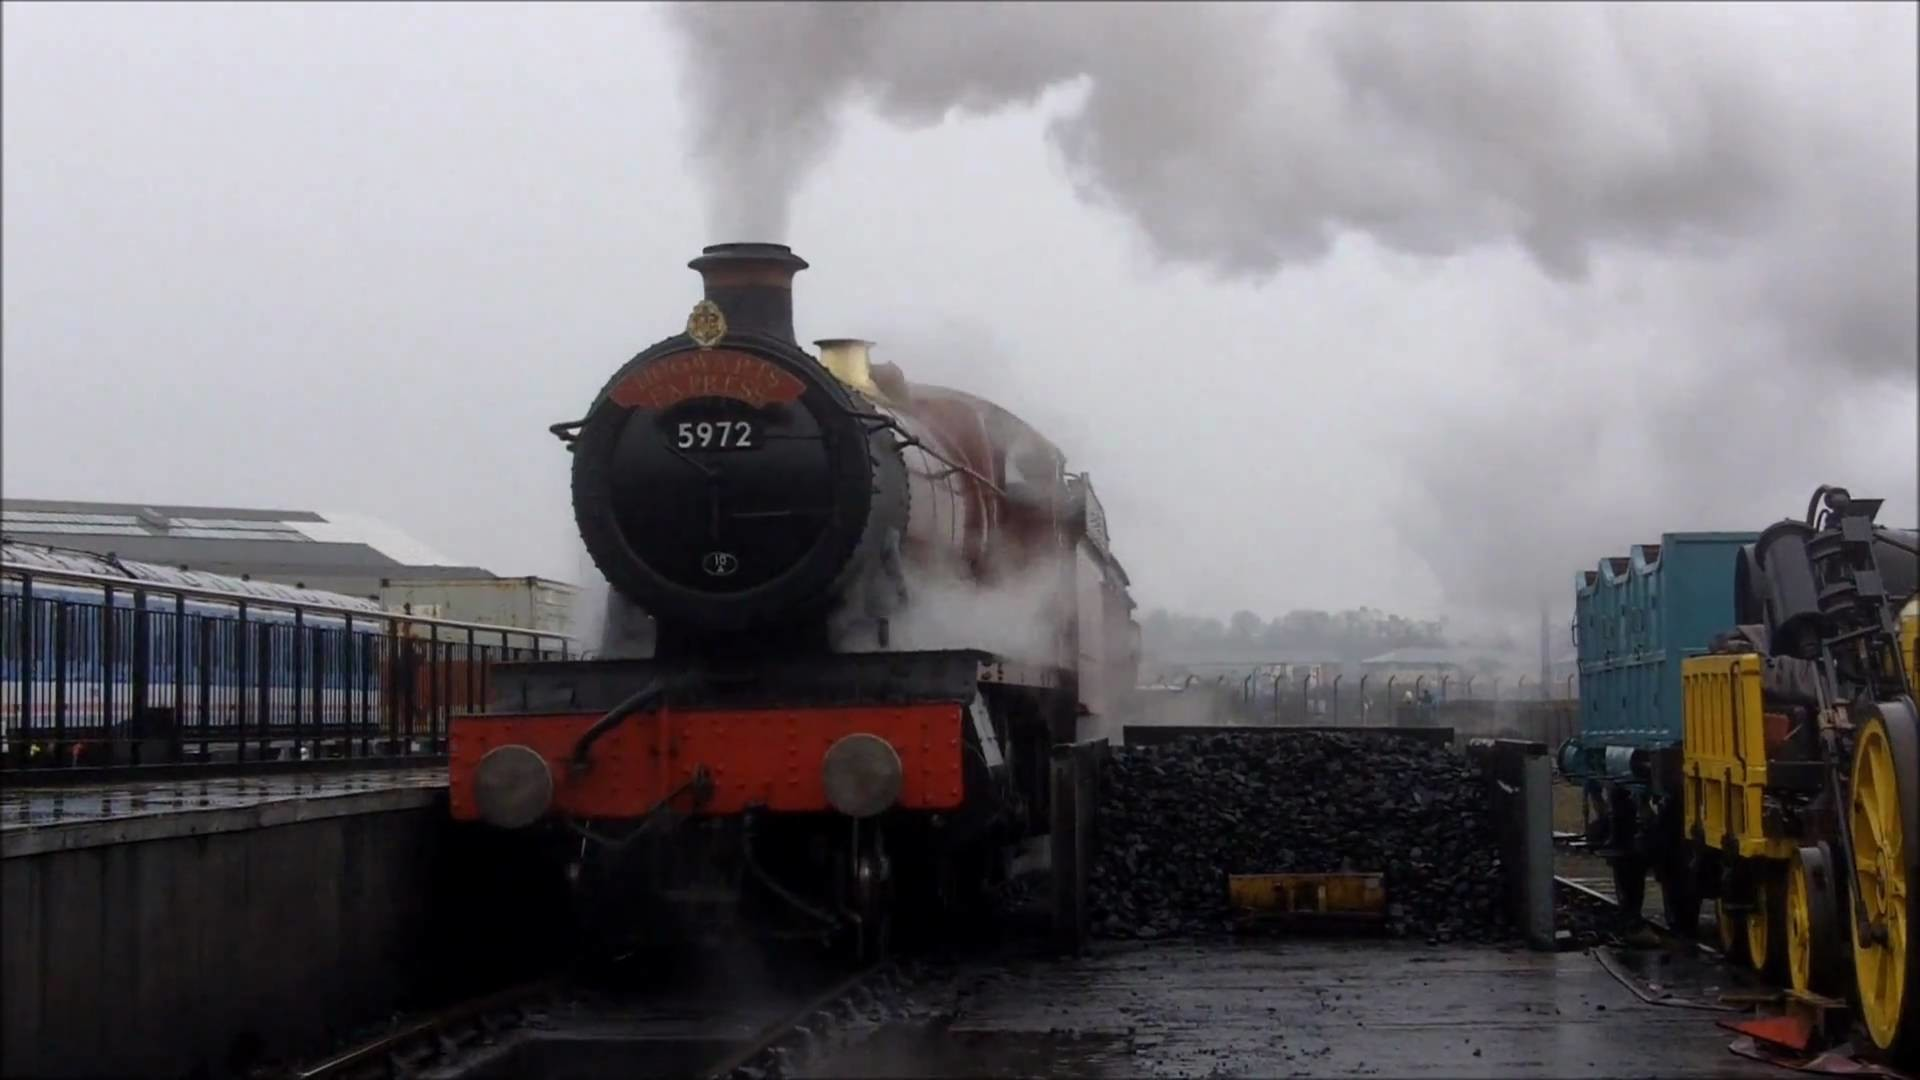 Res: 1920x1080, Hogwarts Express @ York National Train Museum - HD (1080p)